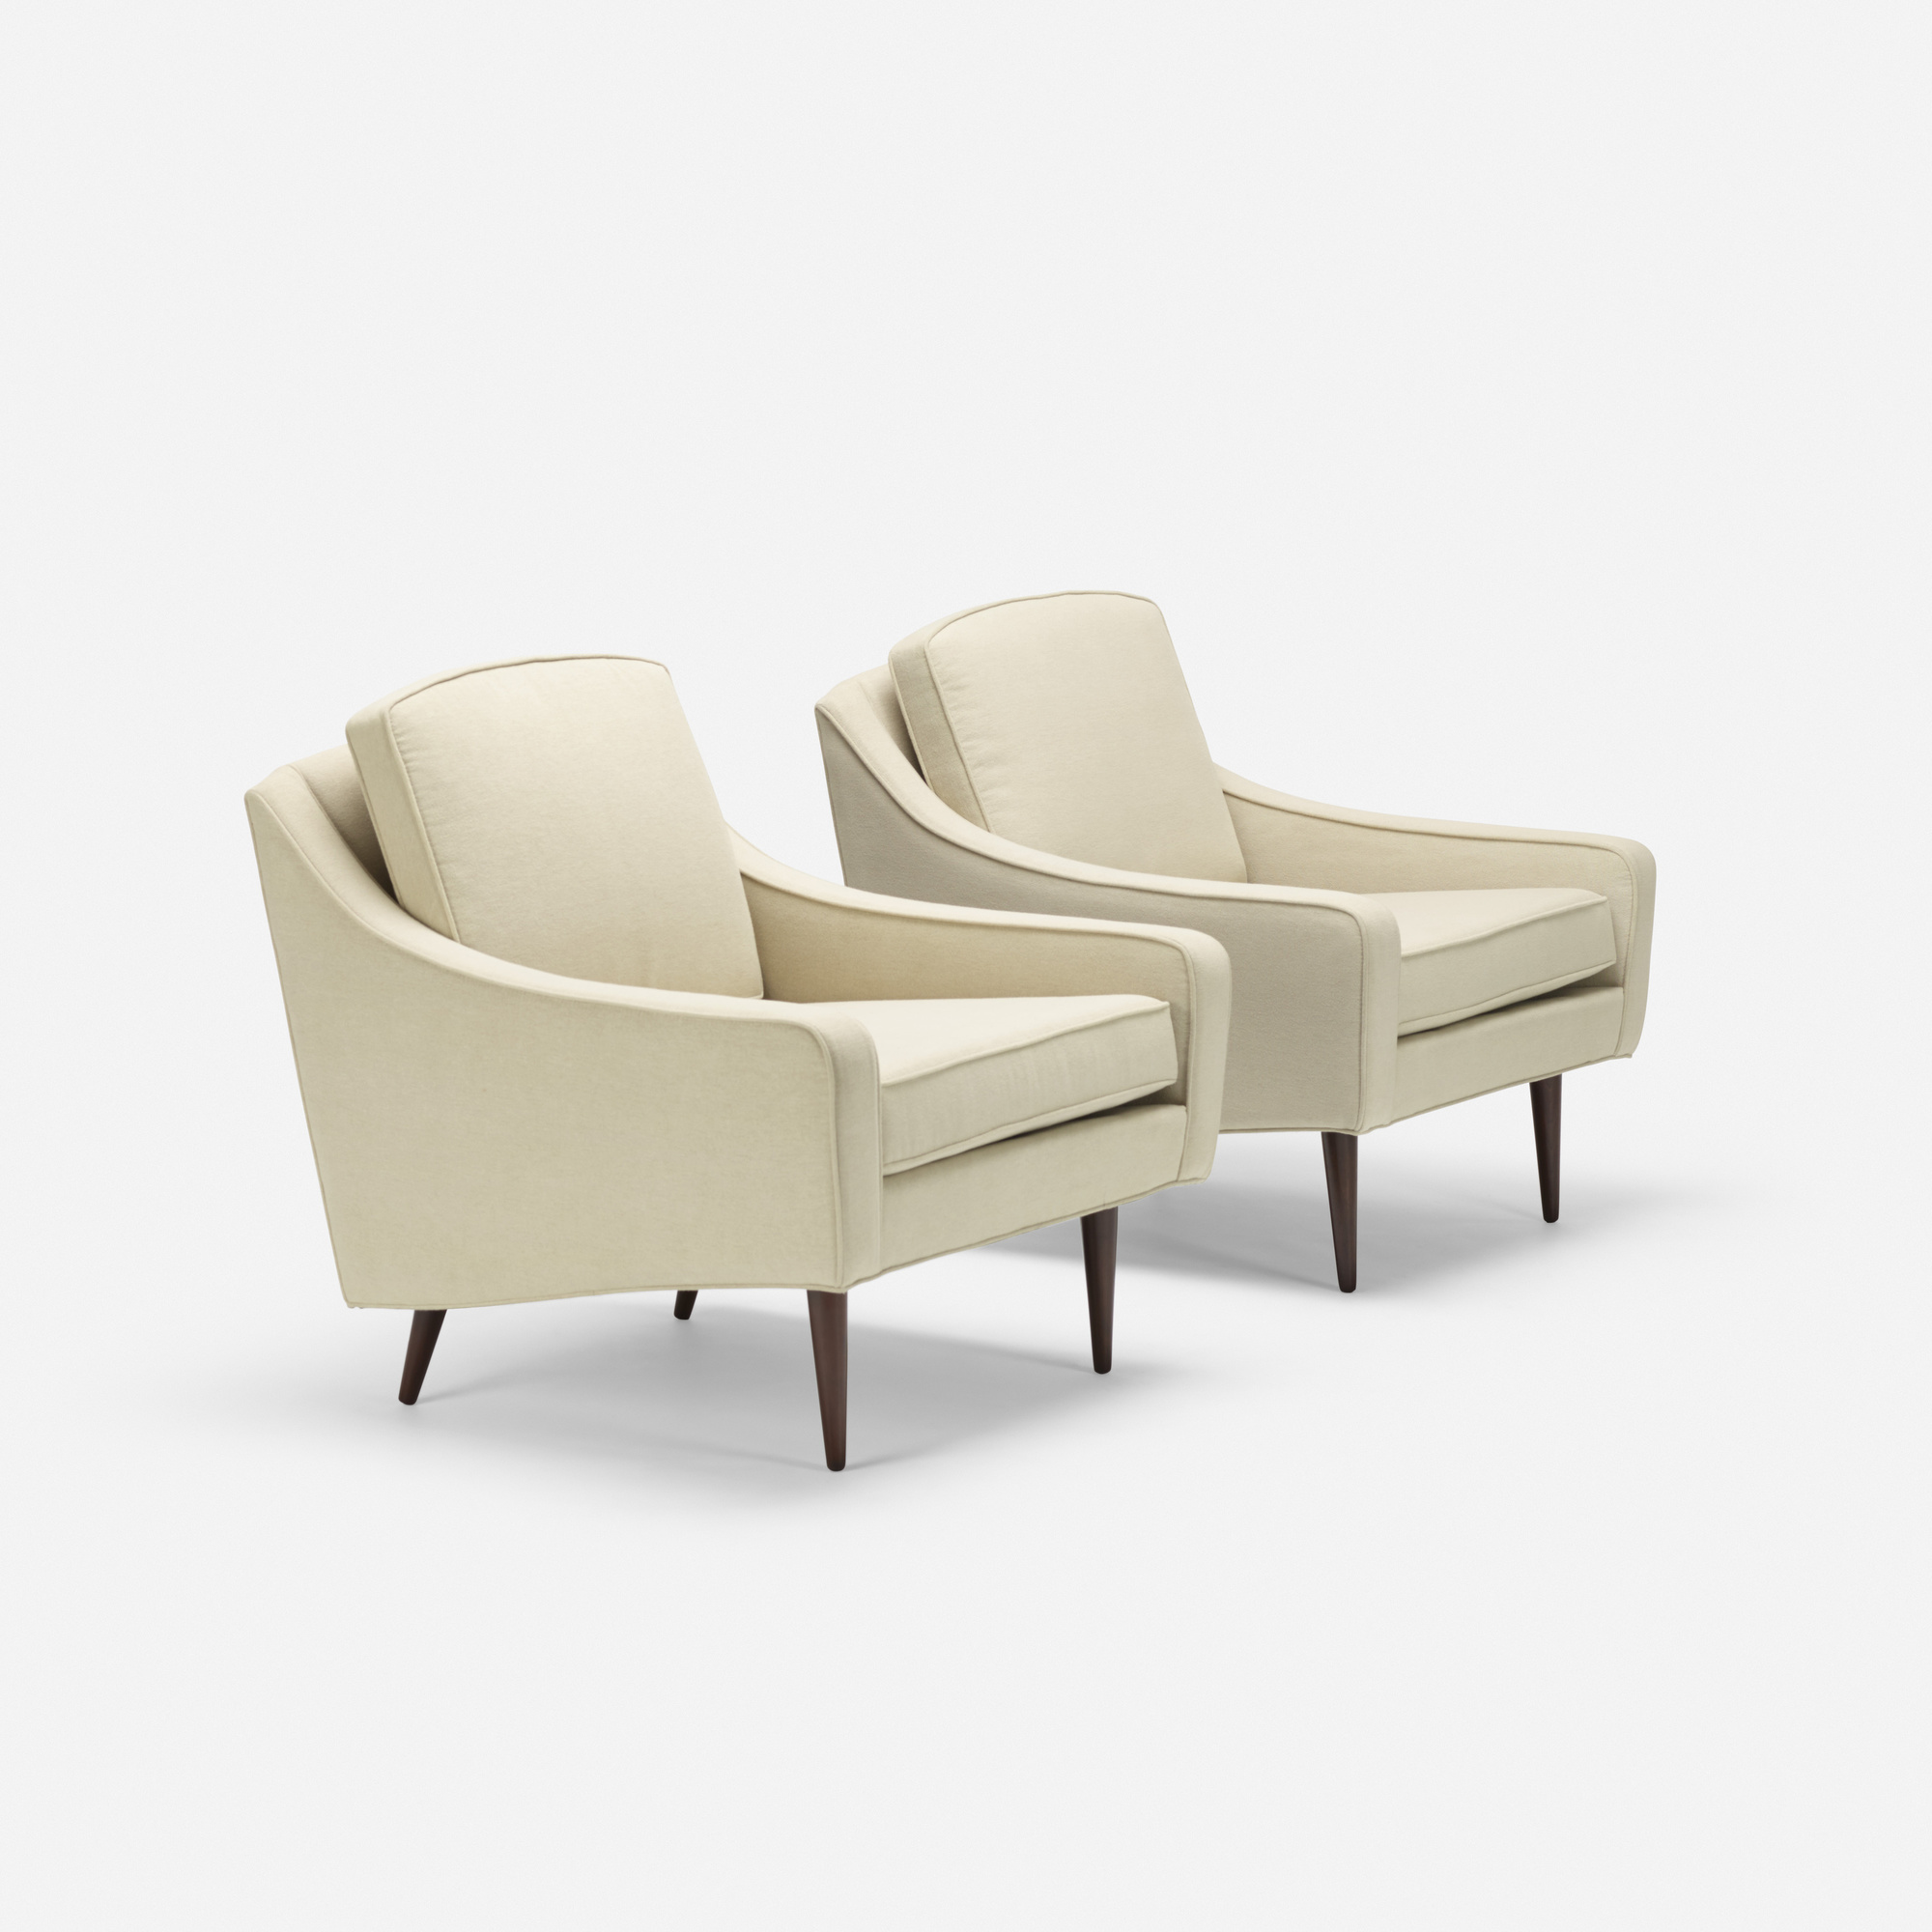 168: Milo Baughman / lounge chairs, pair (1 of 4)